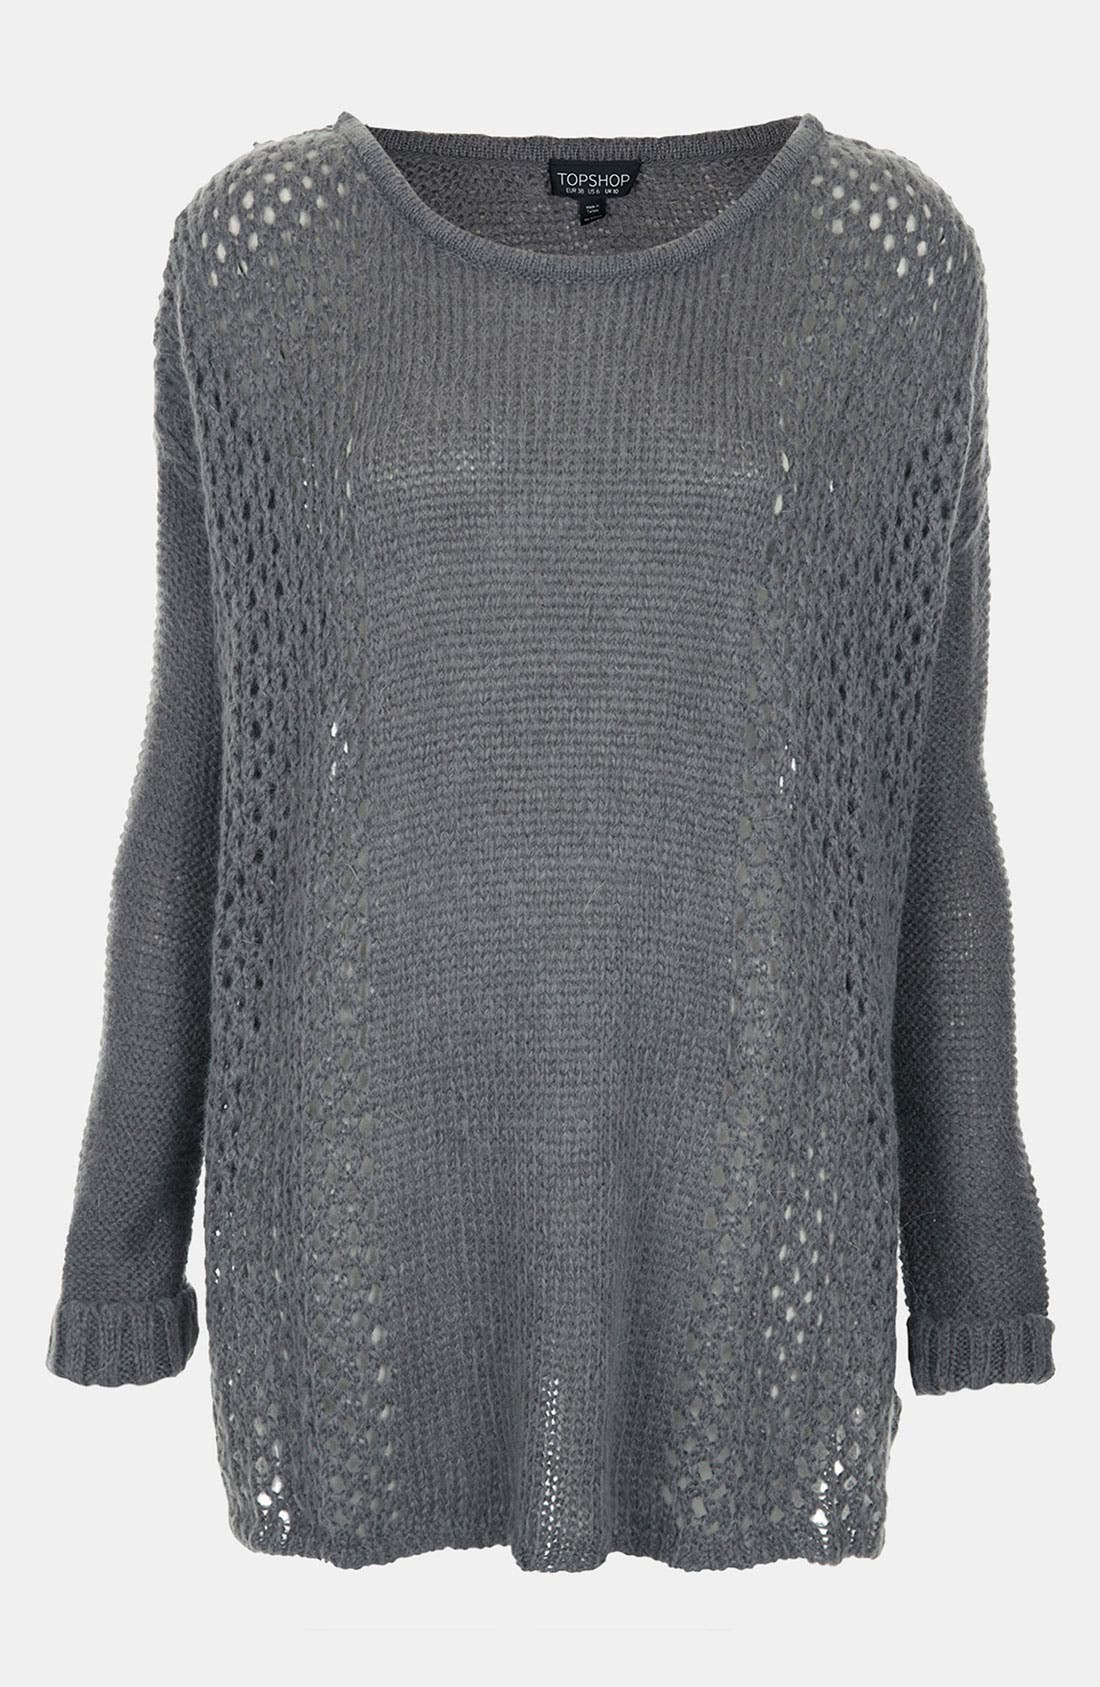 Alternate Image 1 Selected - Topshop 'Rock Girl' Slouchy Mesh Knit Sweater